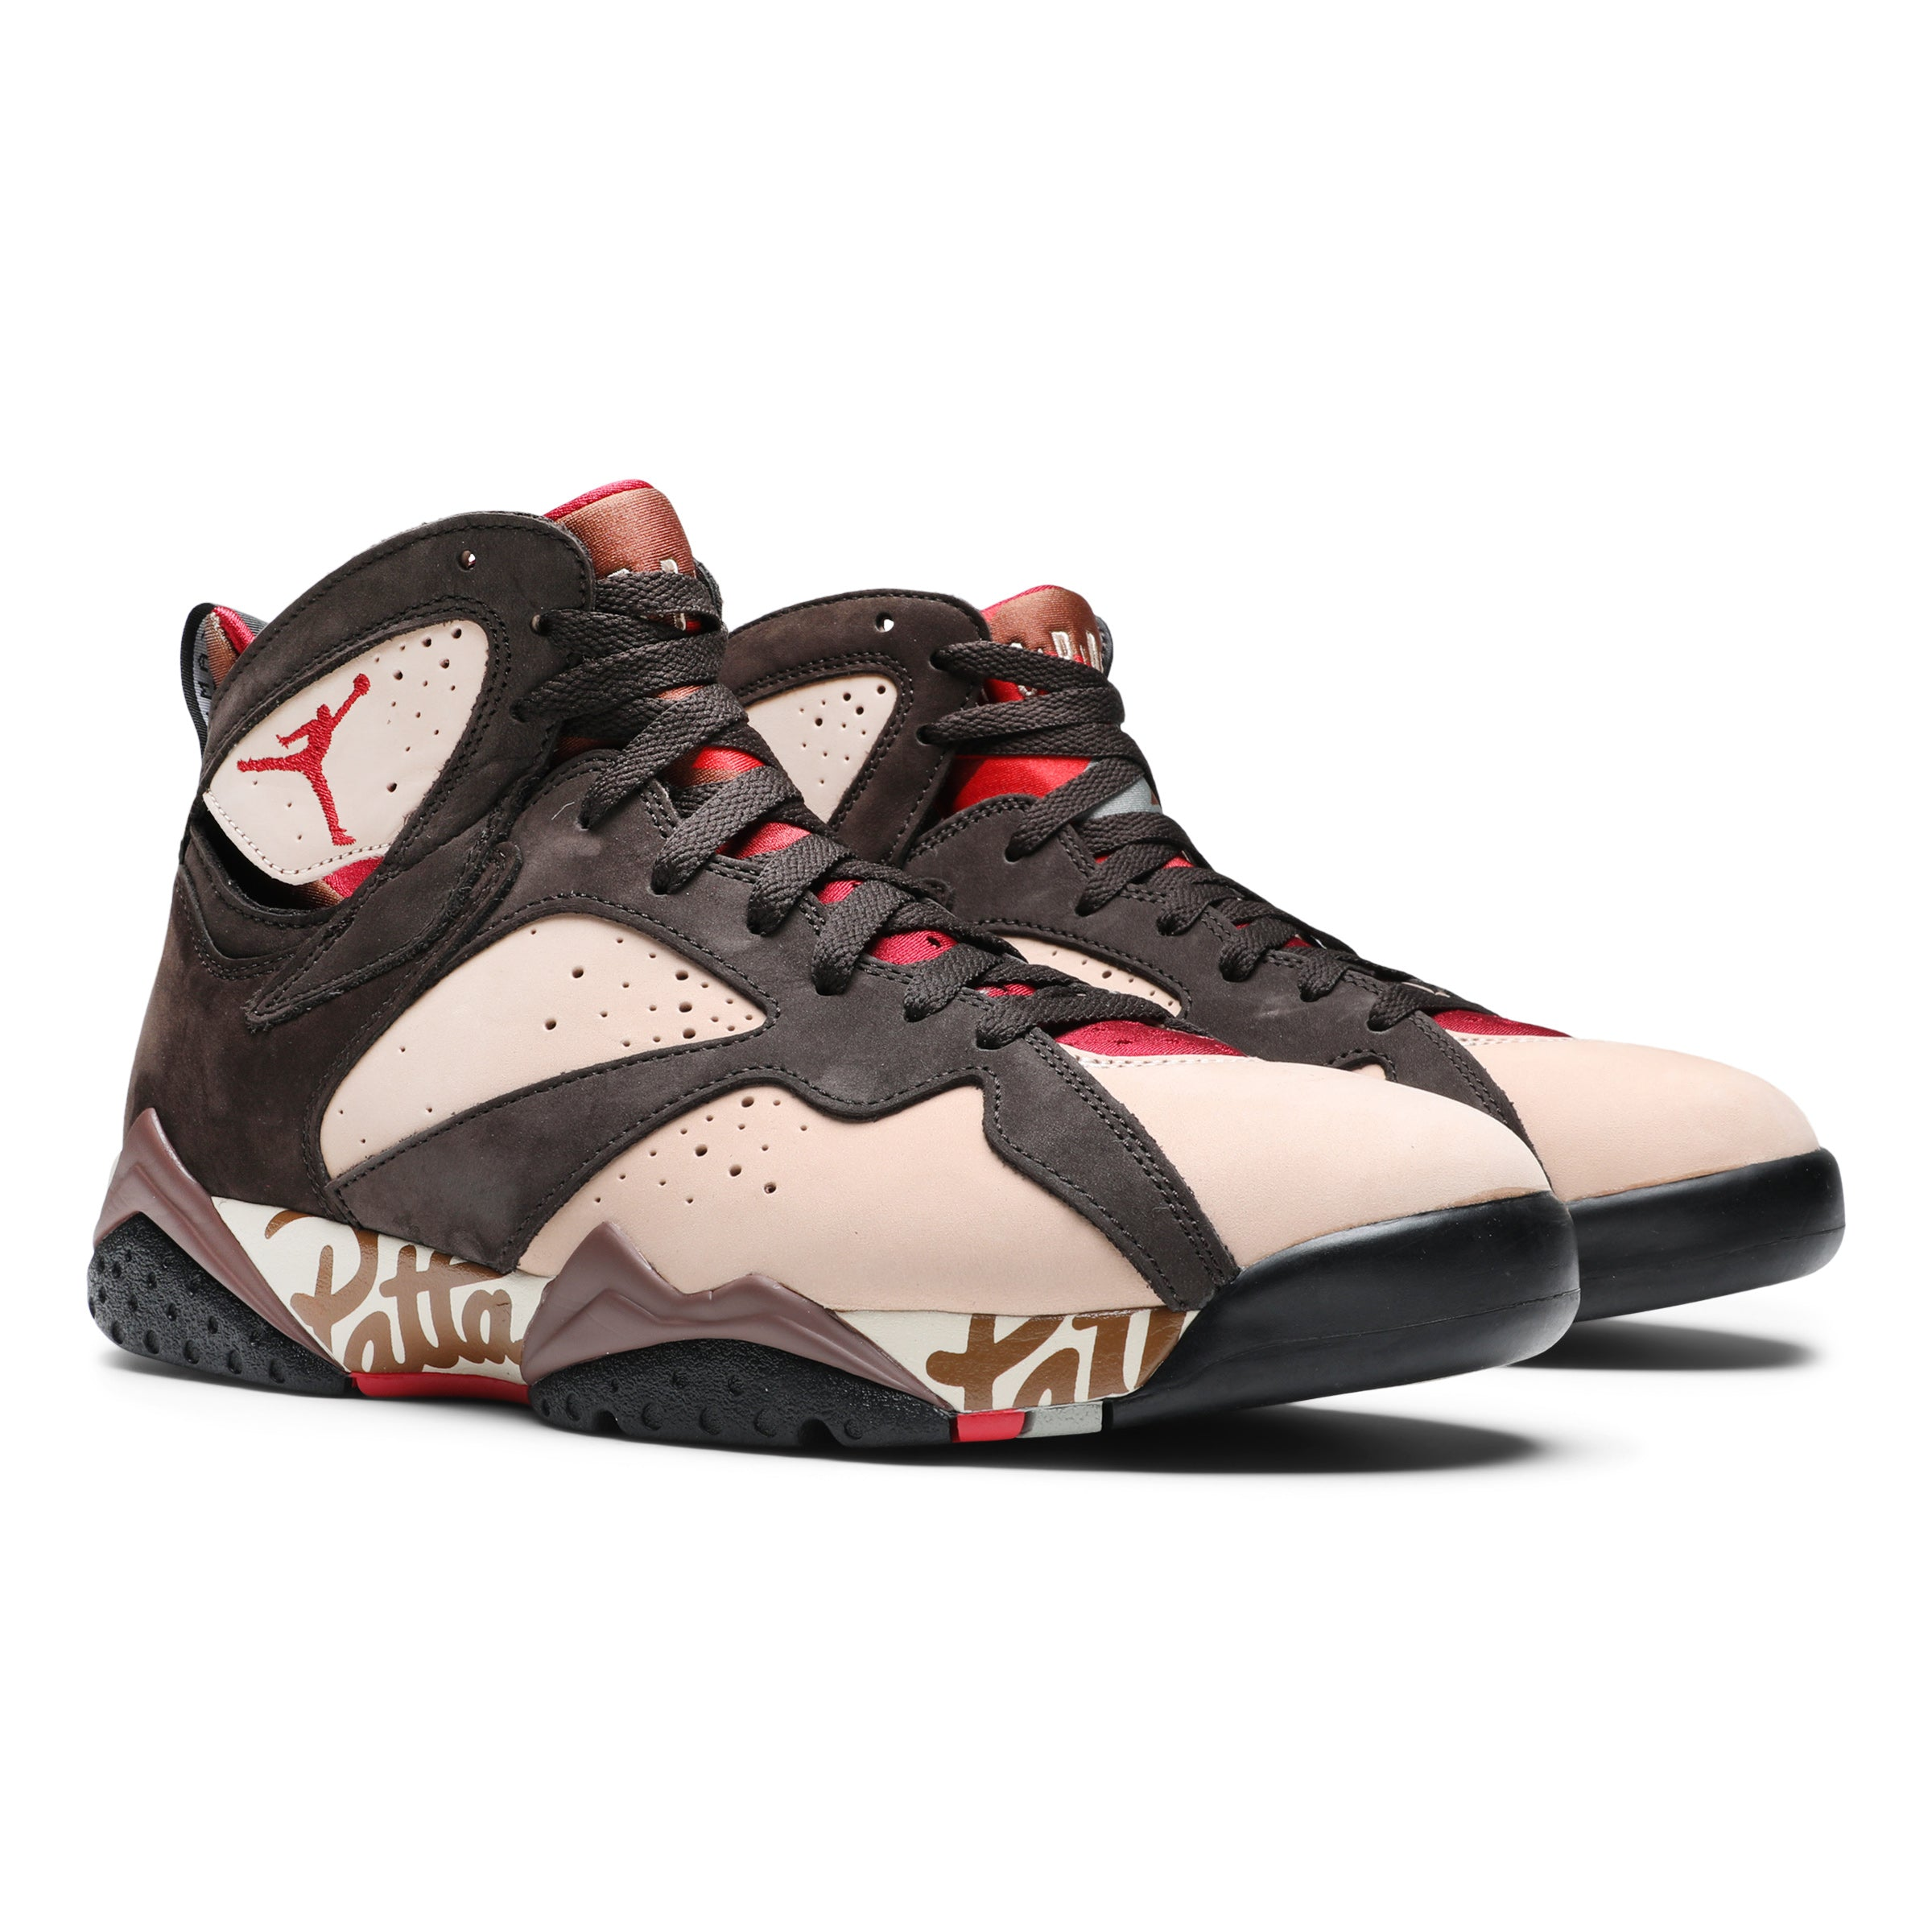 8828b82ea23 Air Jordan x Patta 7 Retro SHIMMER/TOUGH RED-VELVET BROWN AT3375-200.  Retail: $200